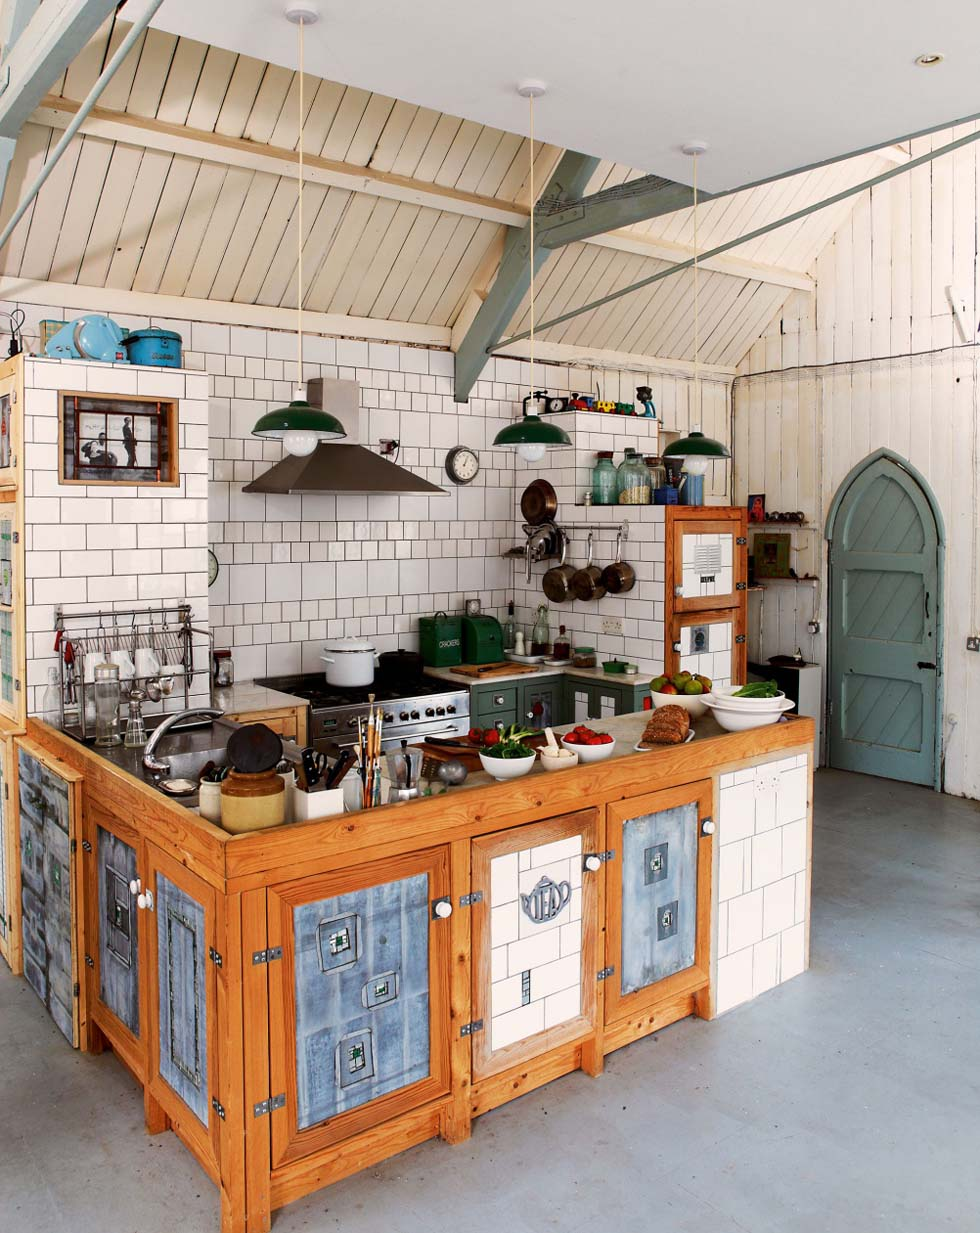 Faversham Kitchen